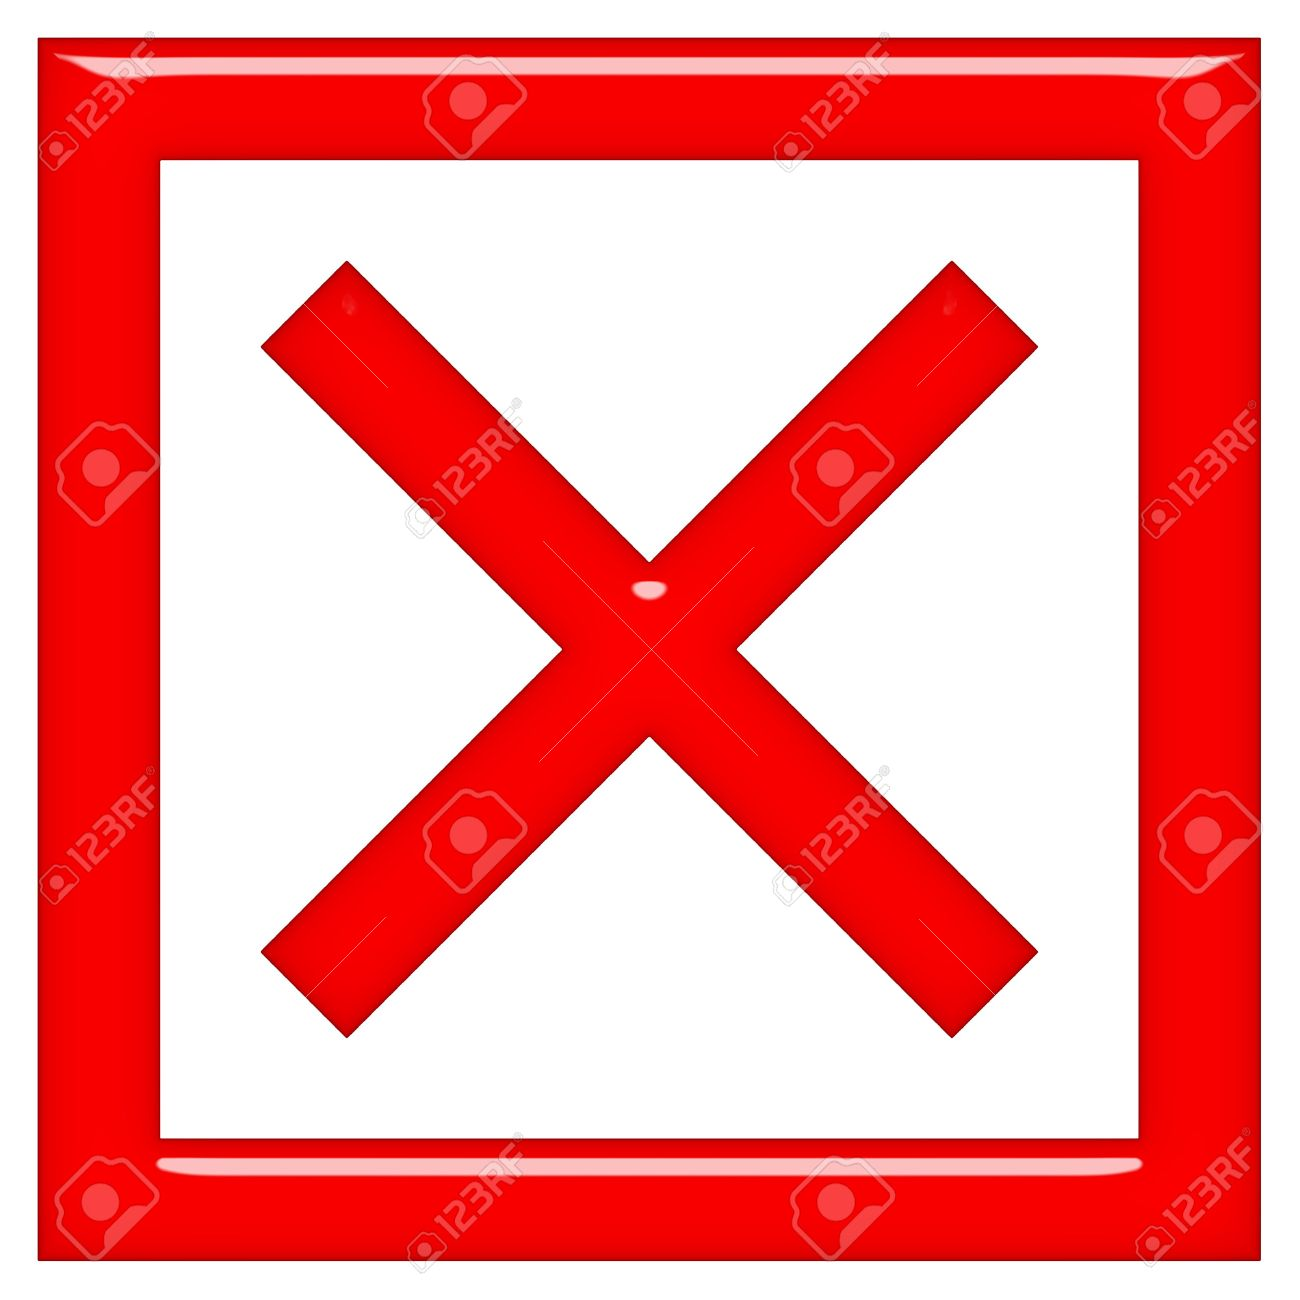 3d rejected or rated X sign Stock Photo - 7438090